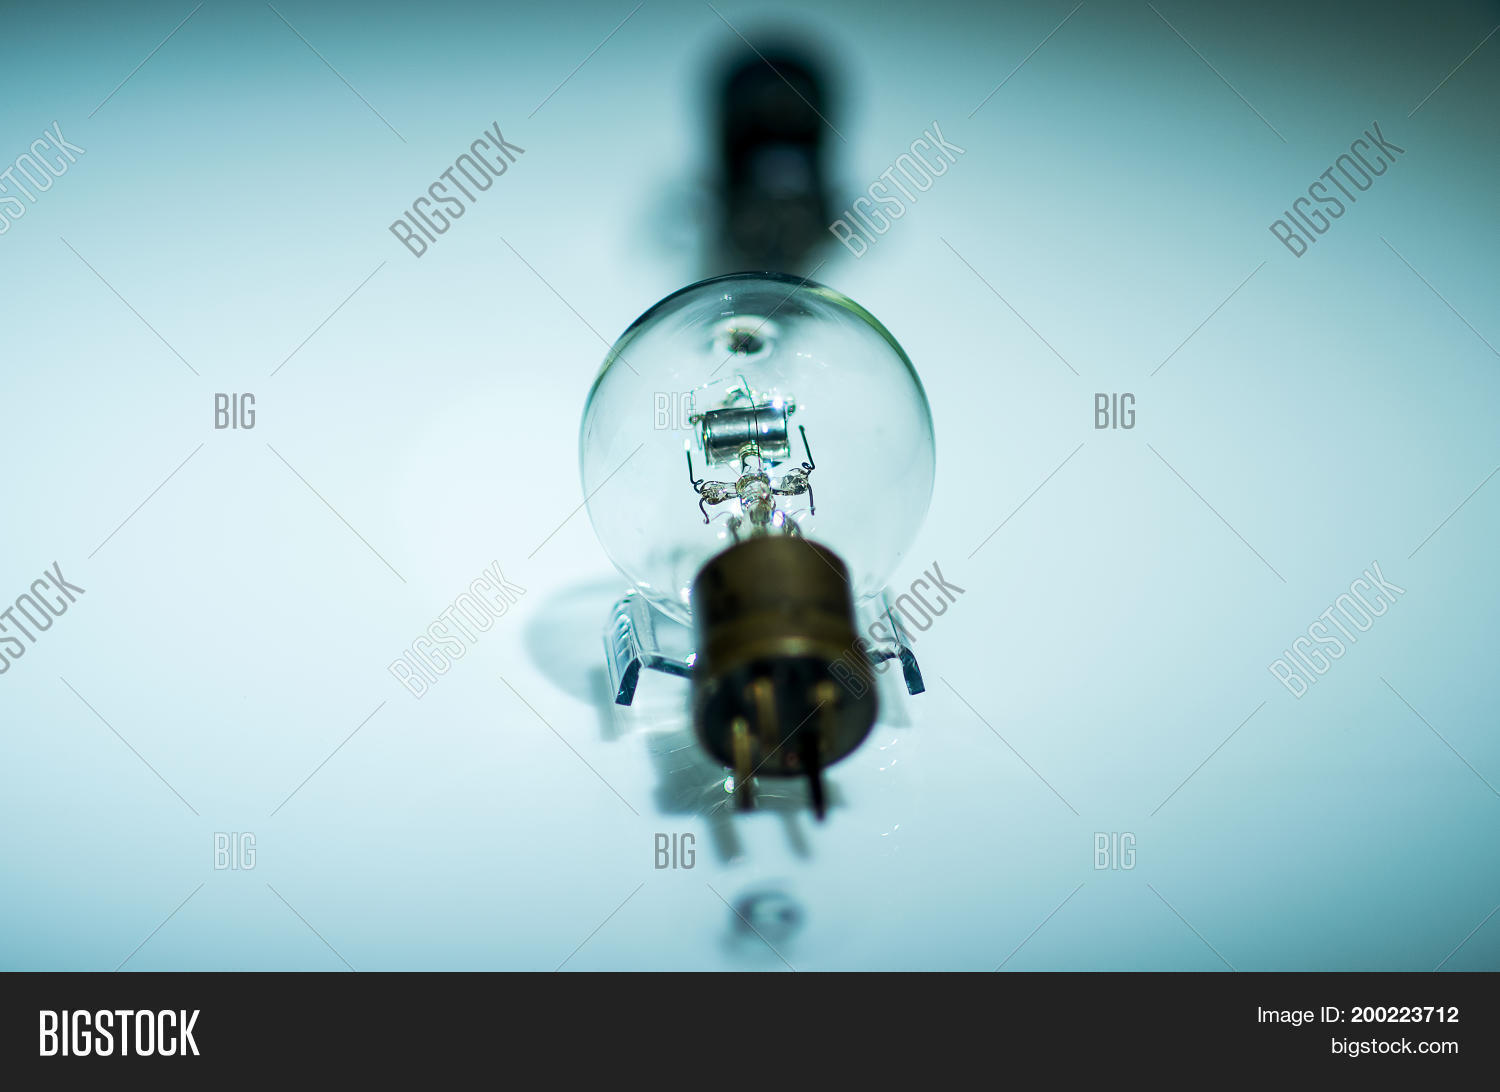 Old Incandescent Lamp Image & Photo (Free Trial) | Bigstock